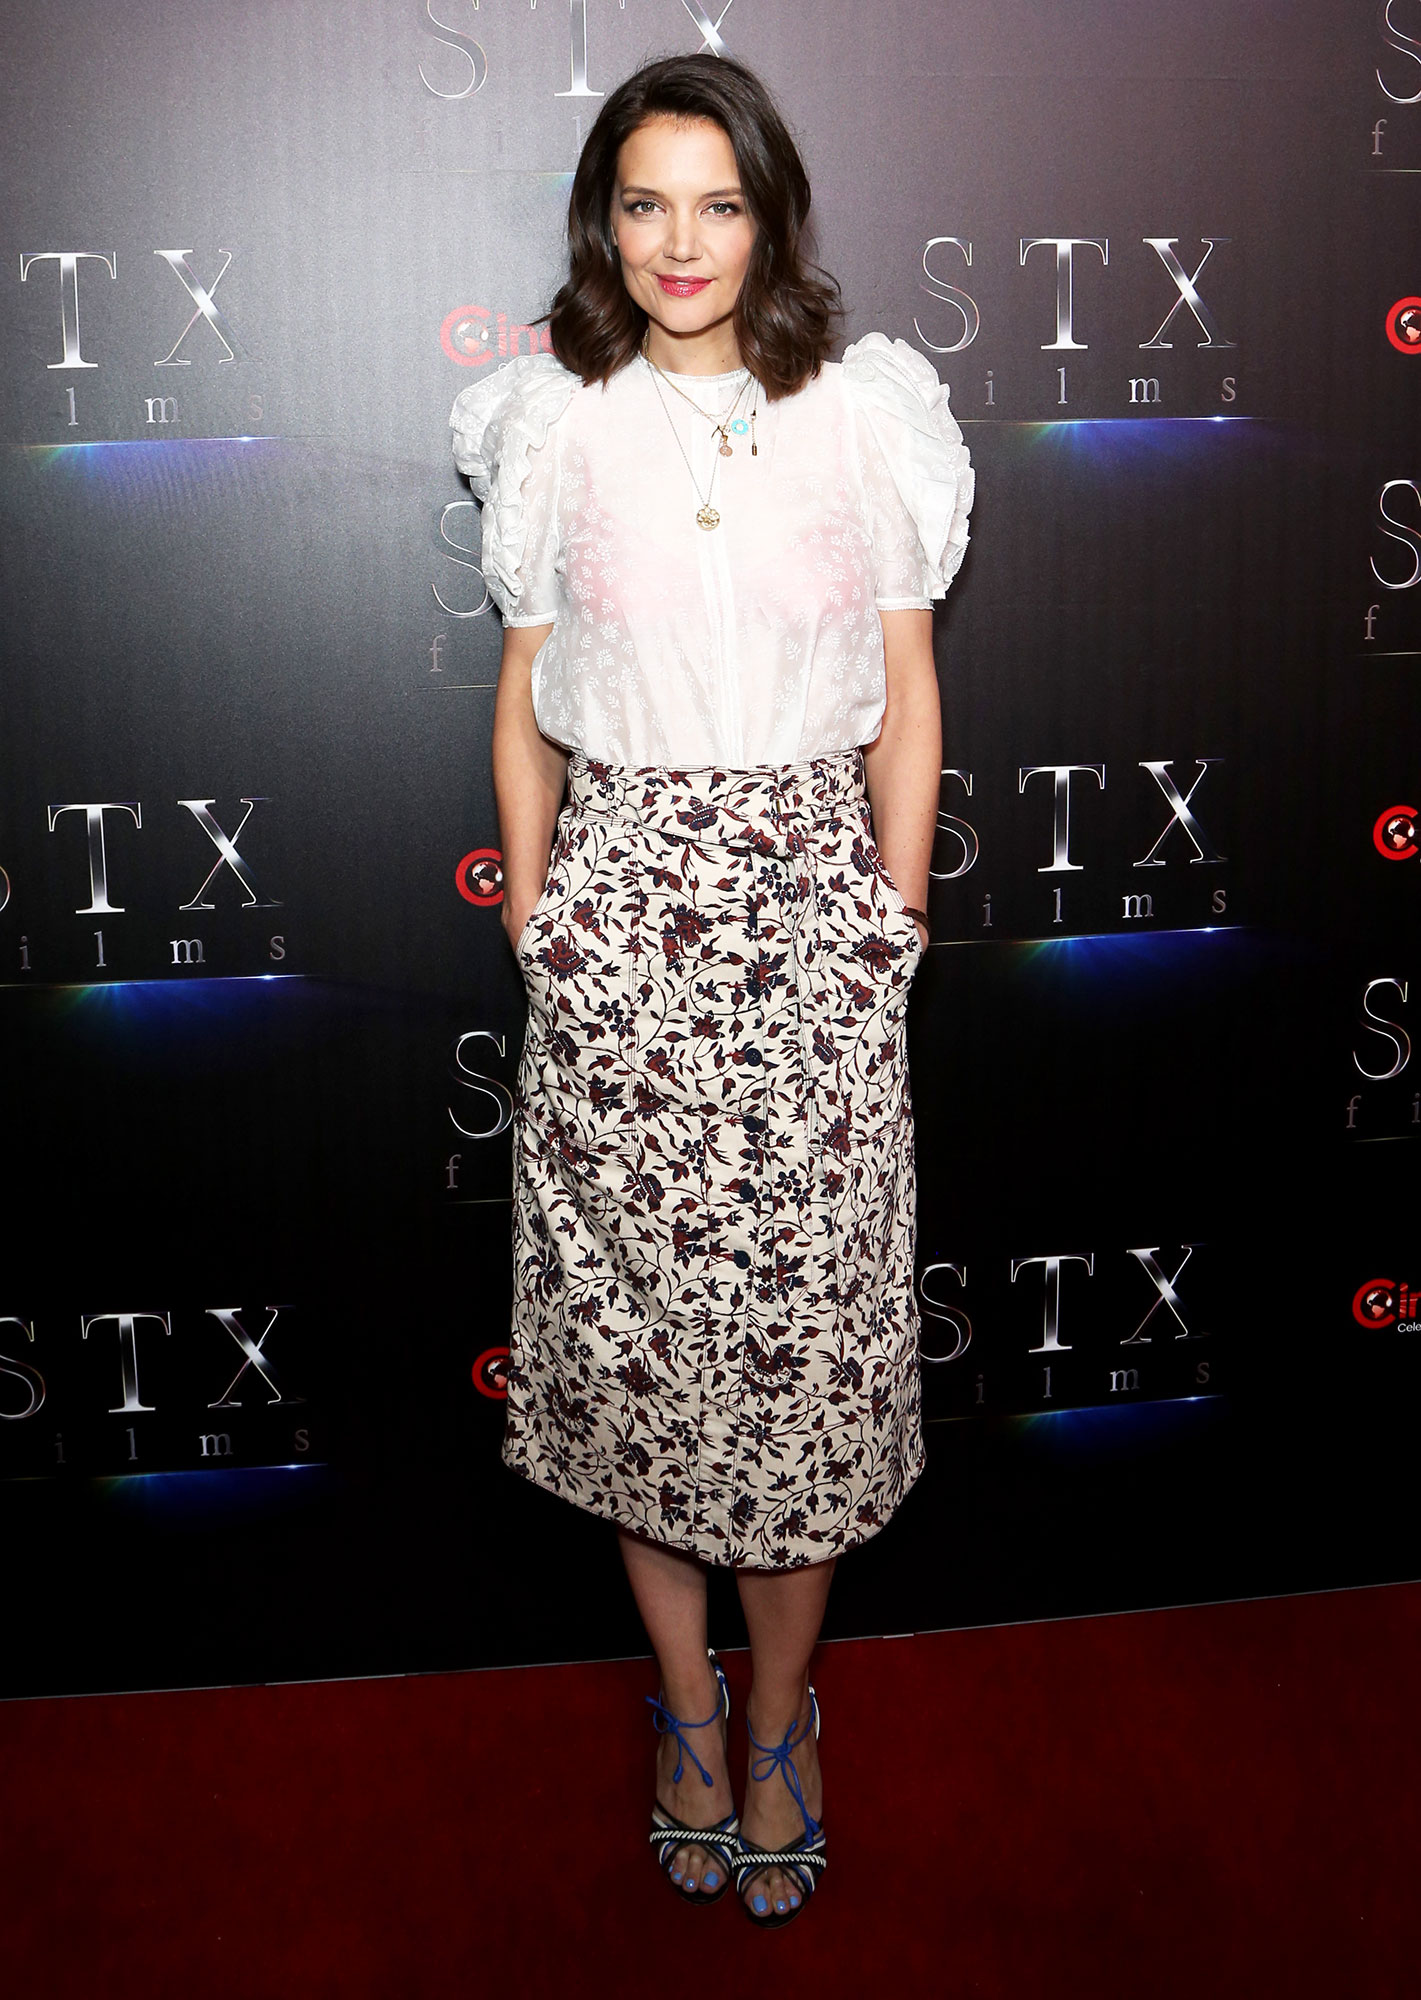 Katie Holmes The Stars Are Bringing Their Style A-Game to CinemaCon - Spring had sprung for the brunette beauty in a floral-print Ulla Johnson ensemble on Tuesday, April 2.